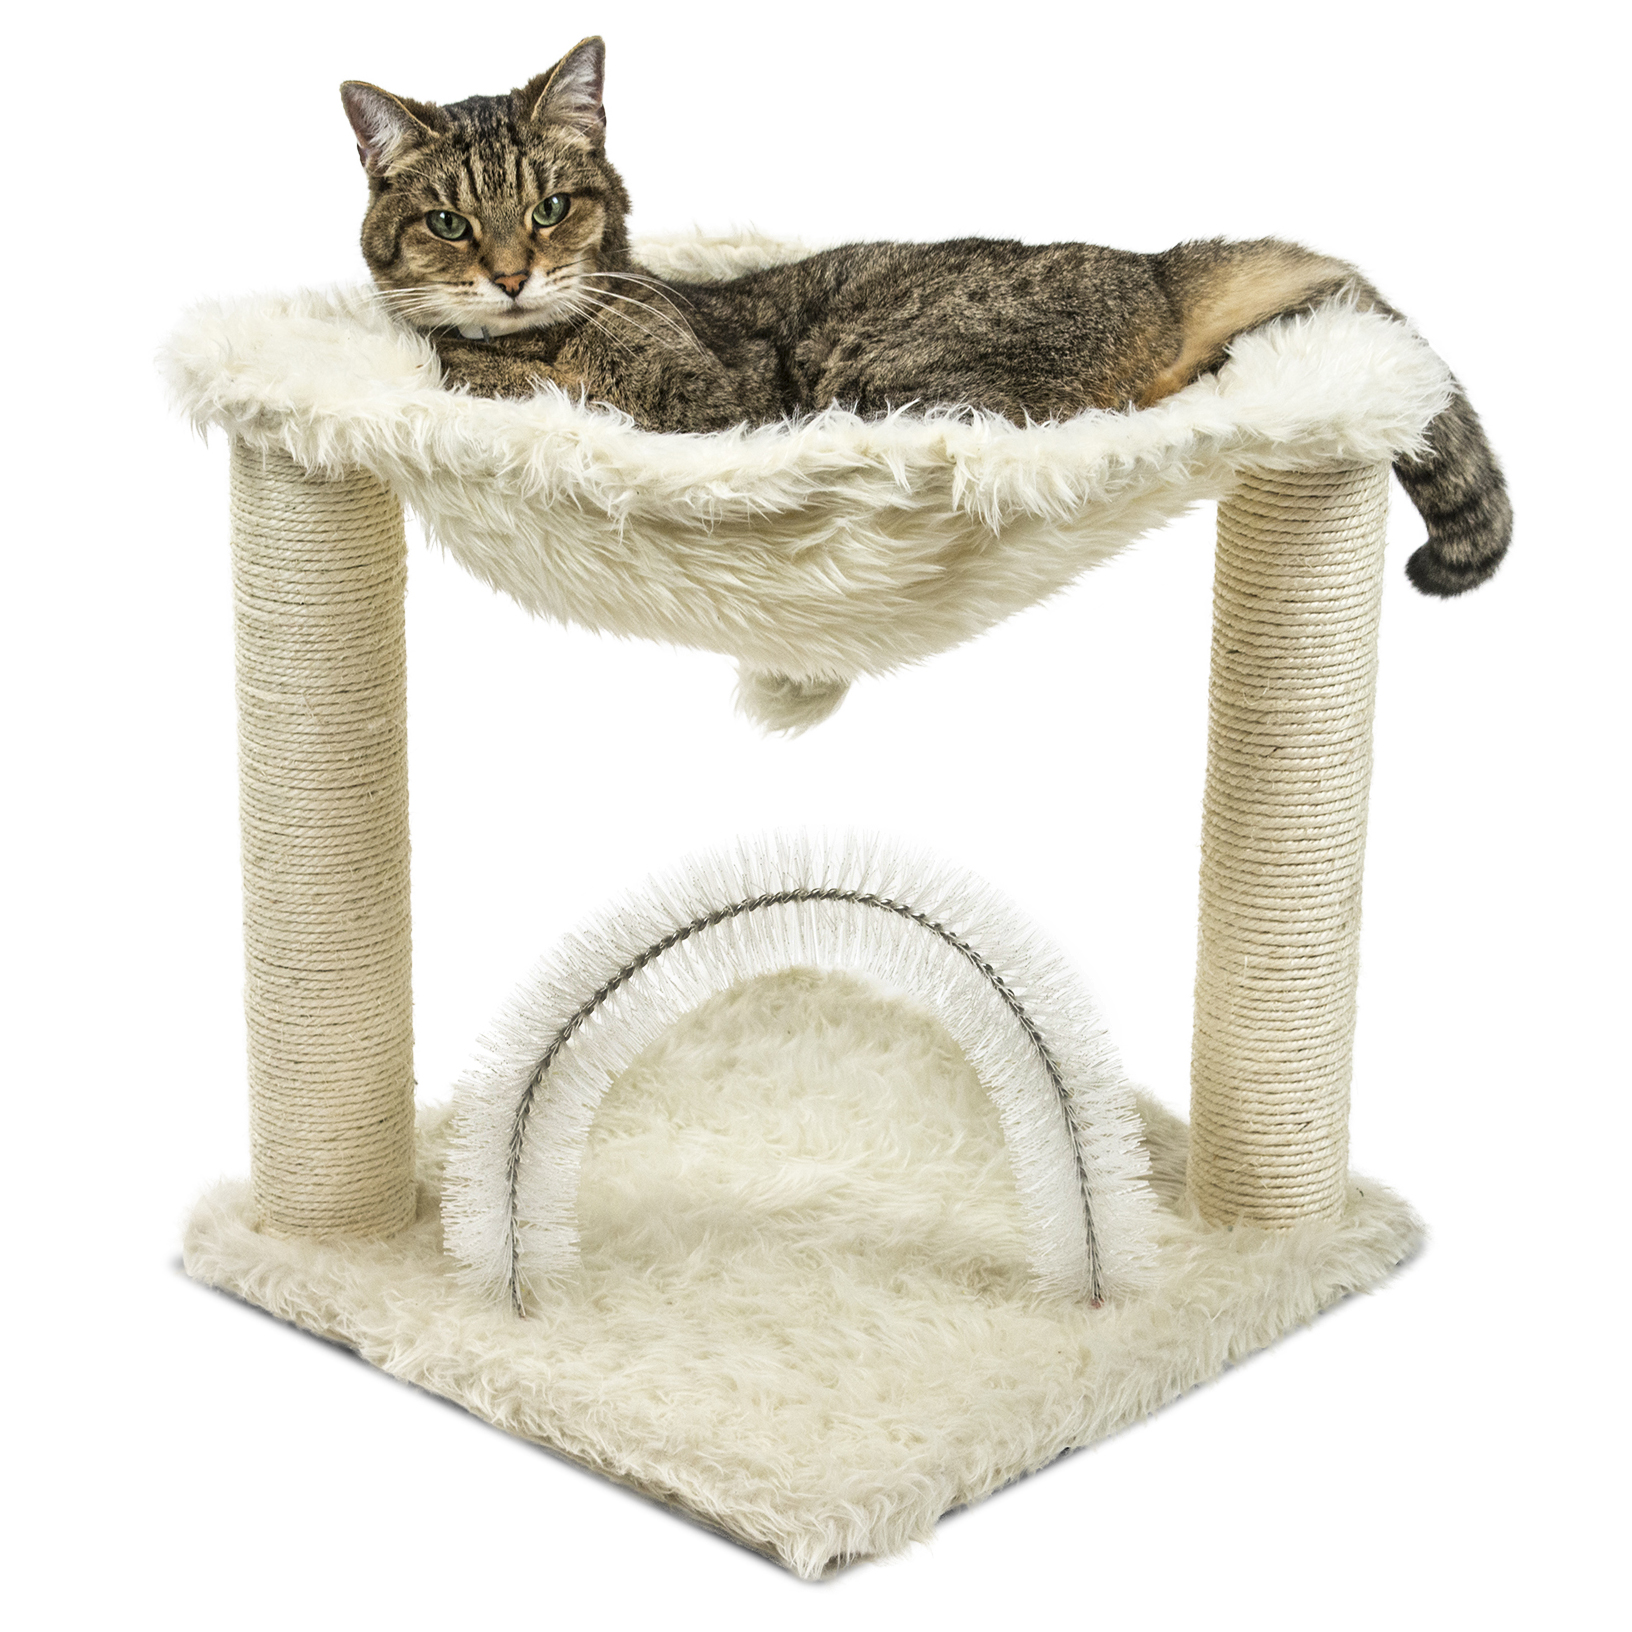 picture 2 of 3     furhaven tiger tough plush hammock cat bed and grooming station      rh   ebay